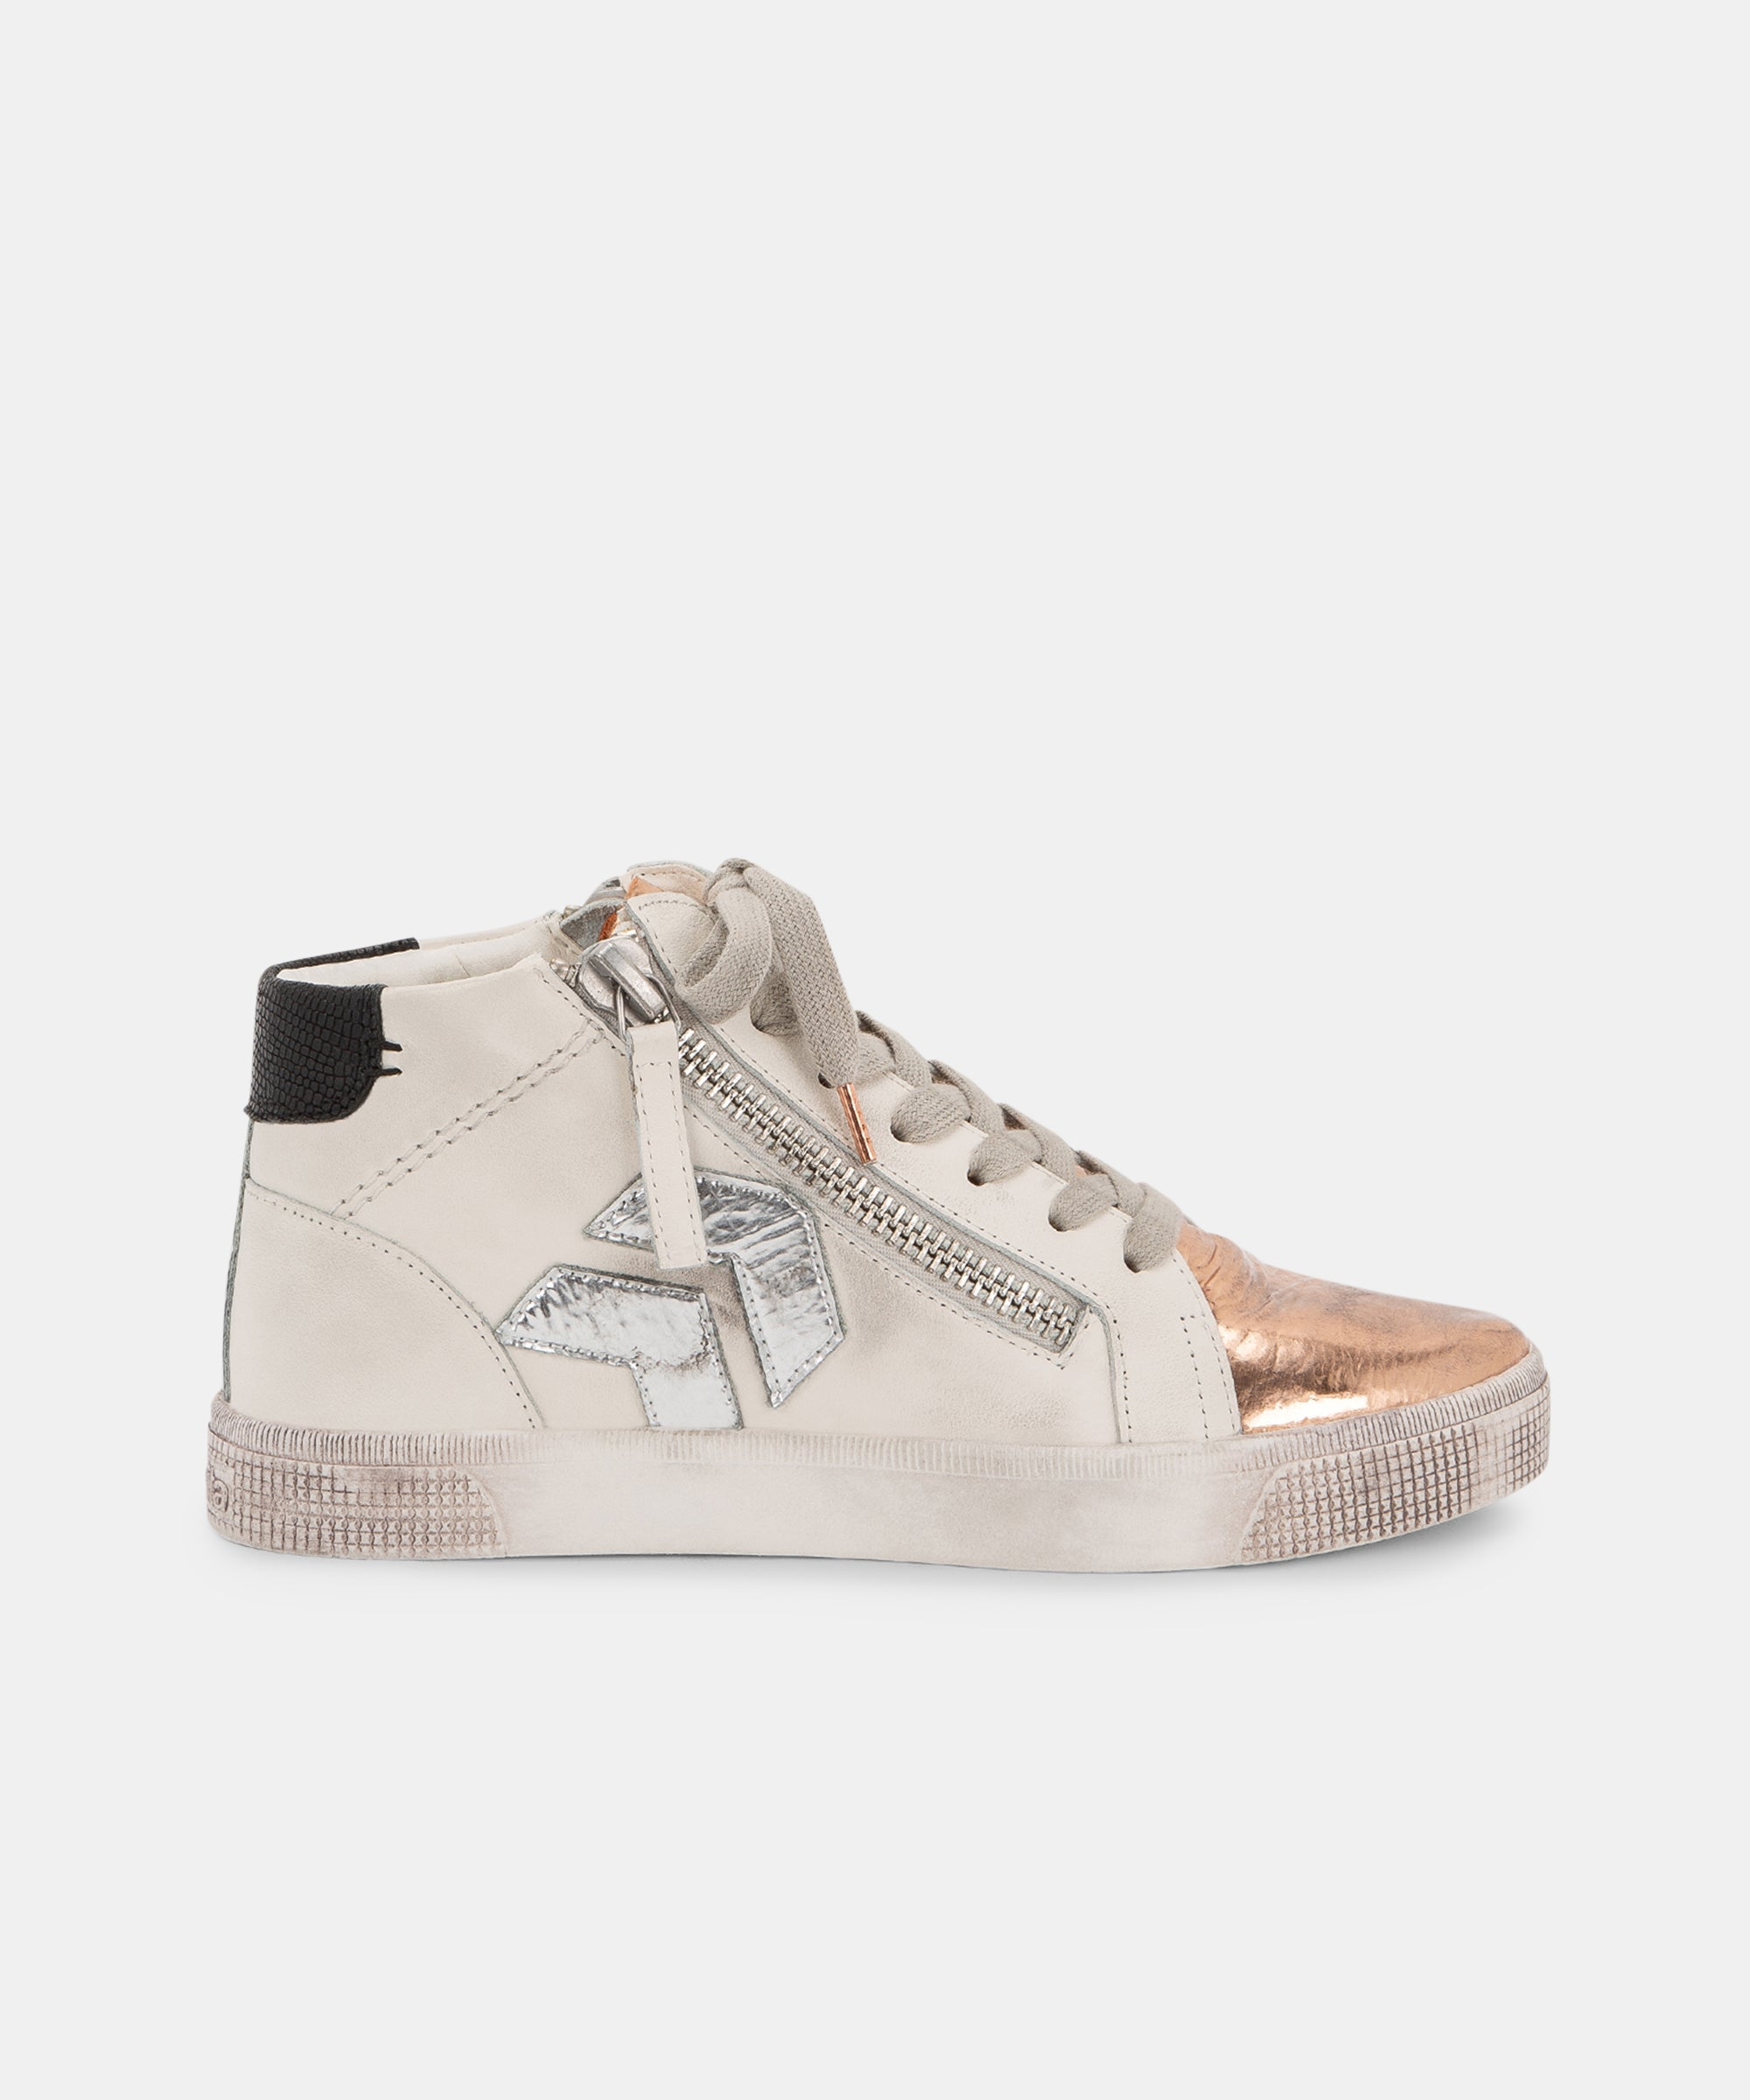 ZONYA SNEAKERS IN COPPER/WHITE